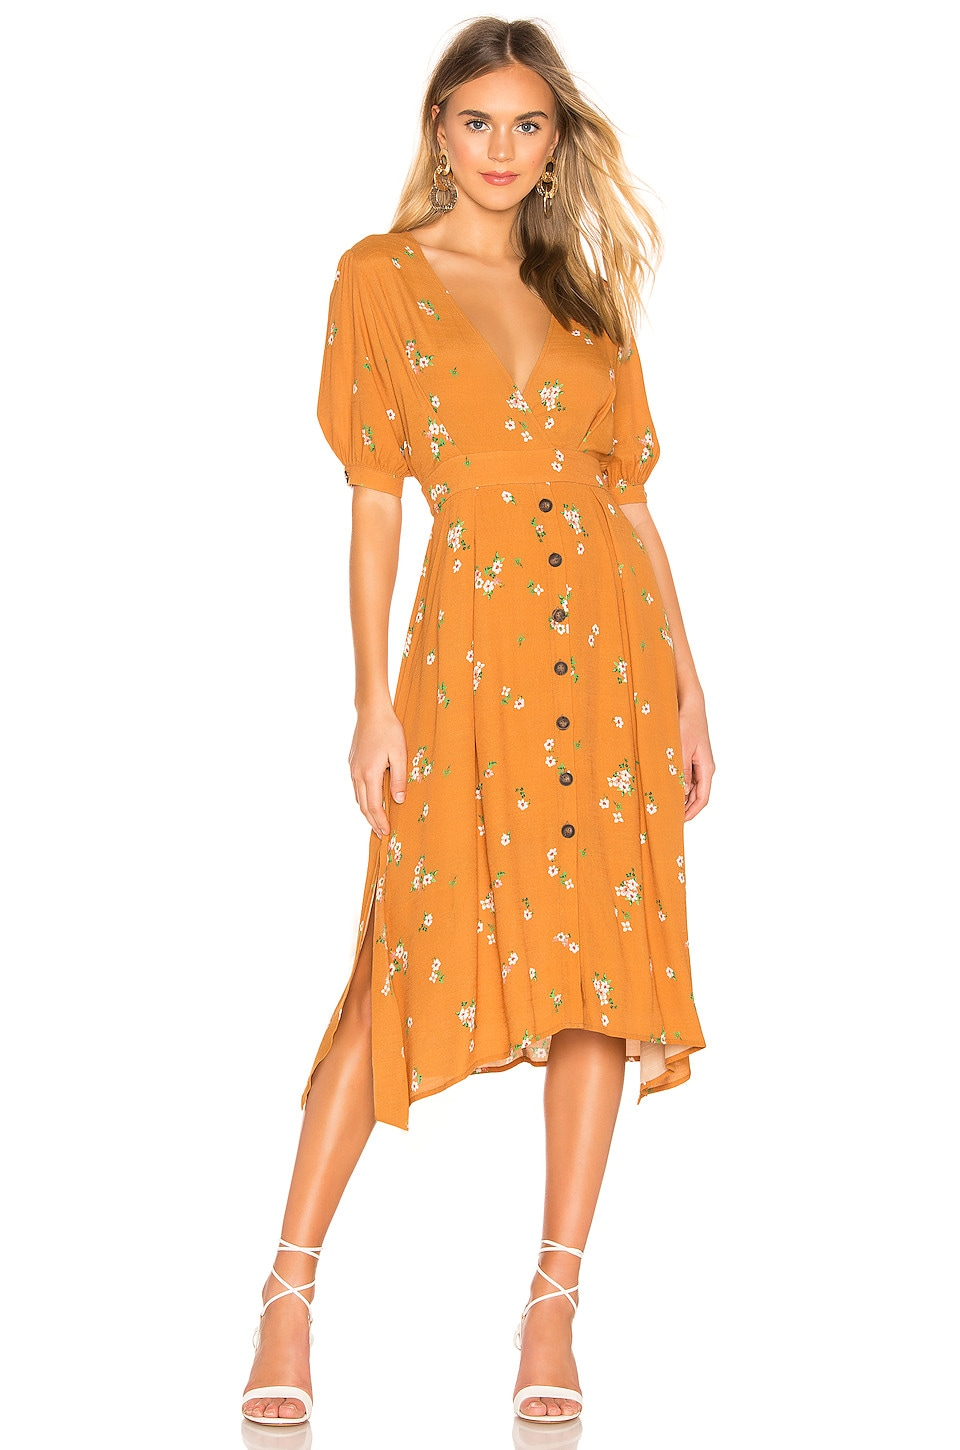 ASTR the Label Oakley Dress in Apricot Floral